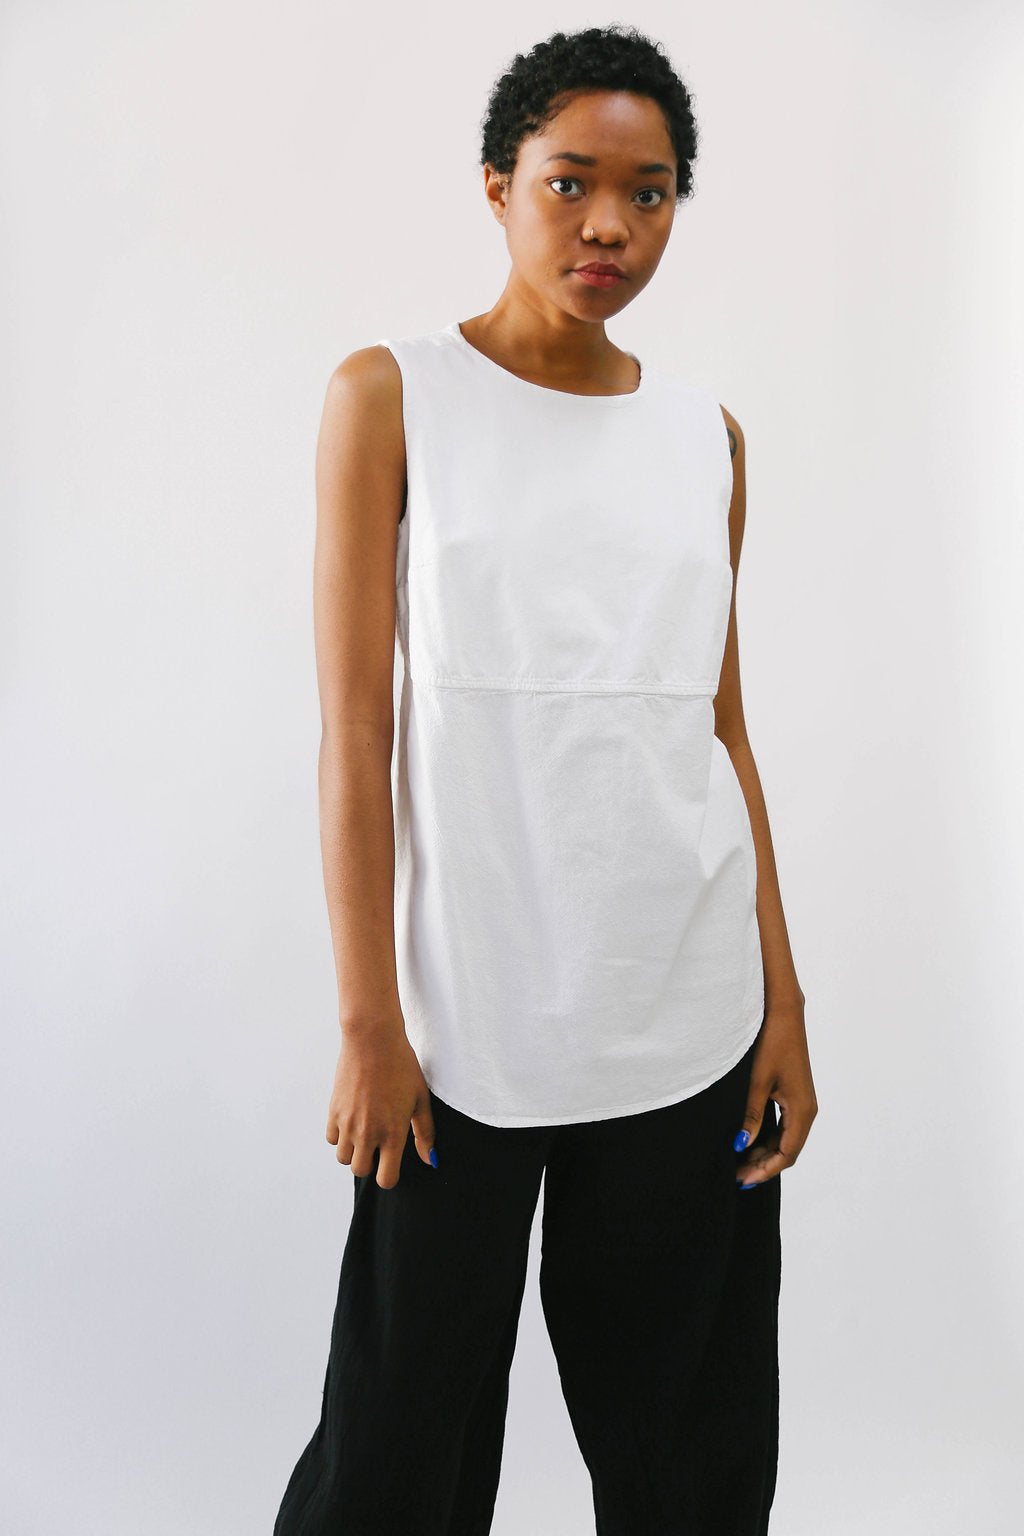 Simply Cotton-Marina Shirt